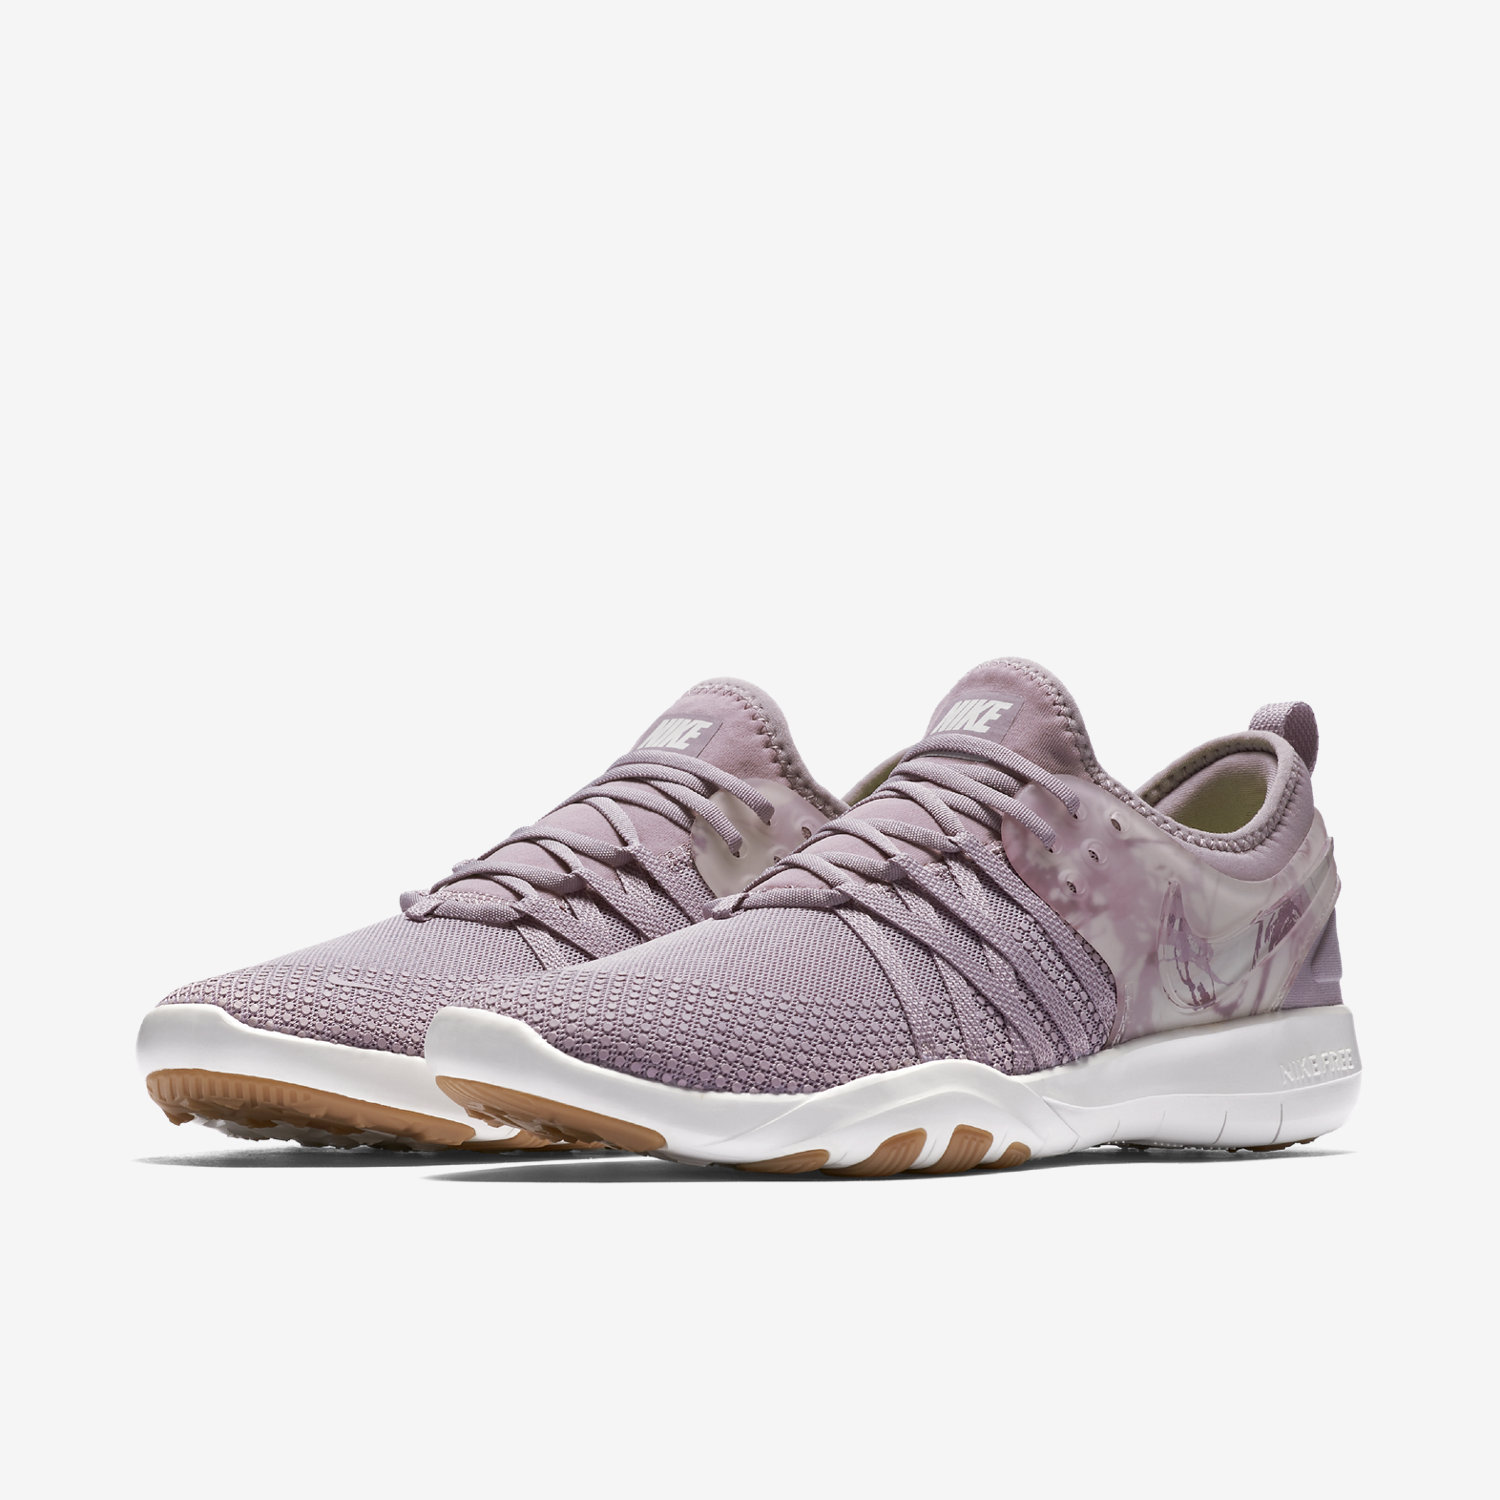 Nike Shoes In Blush